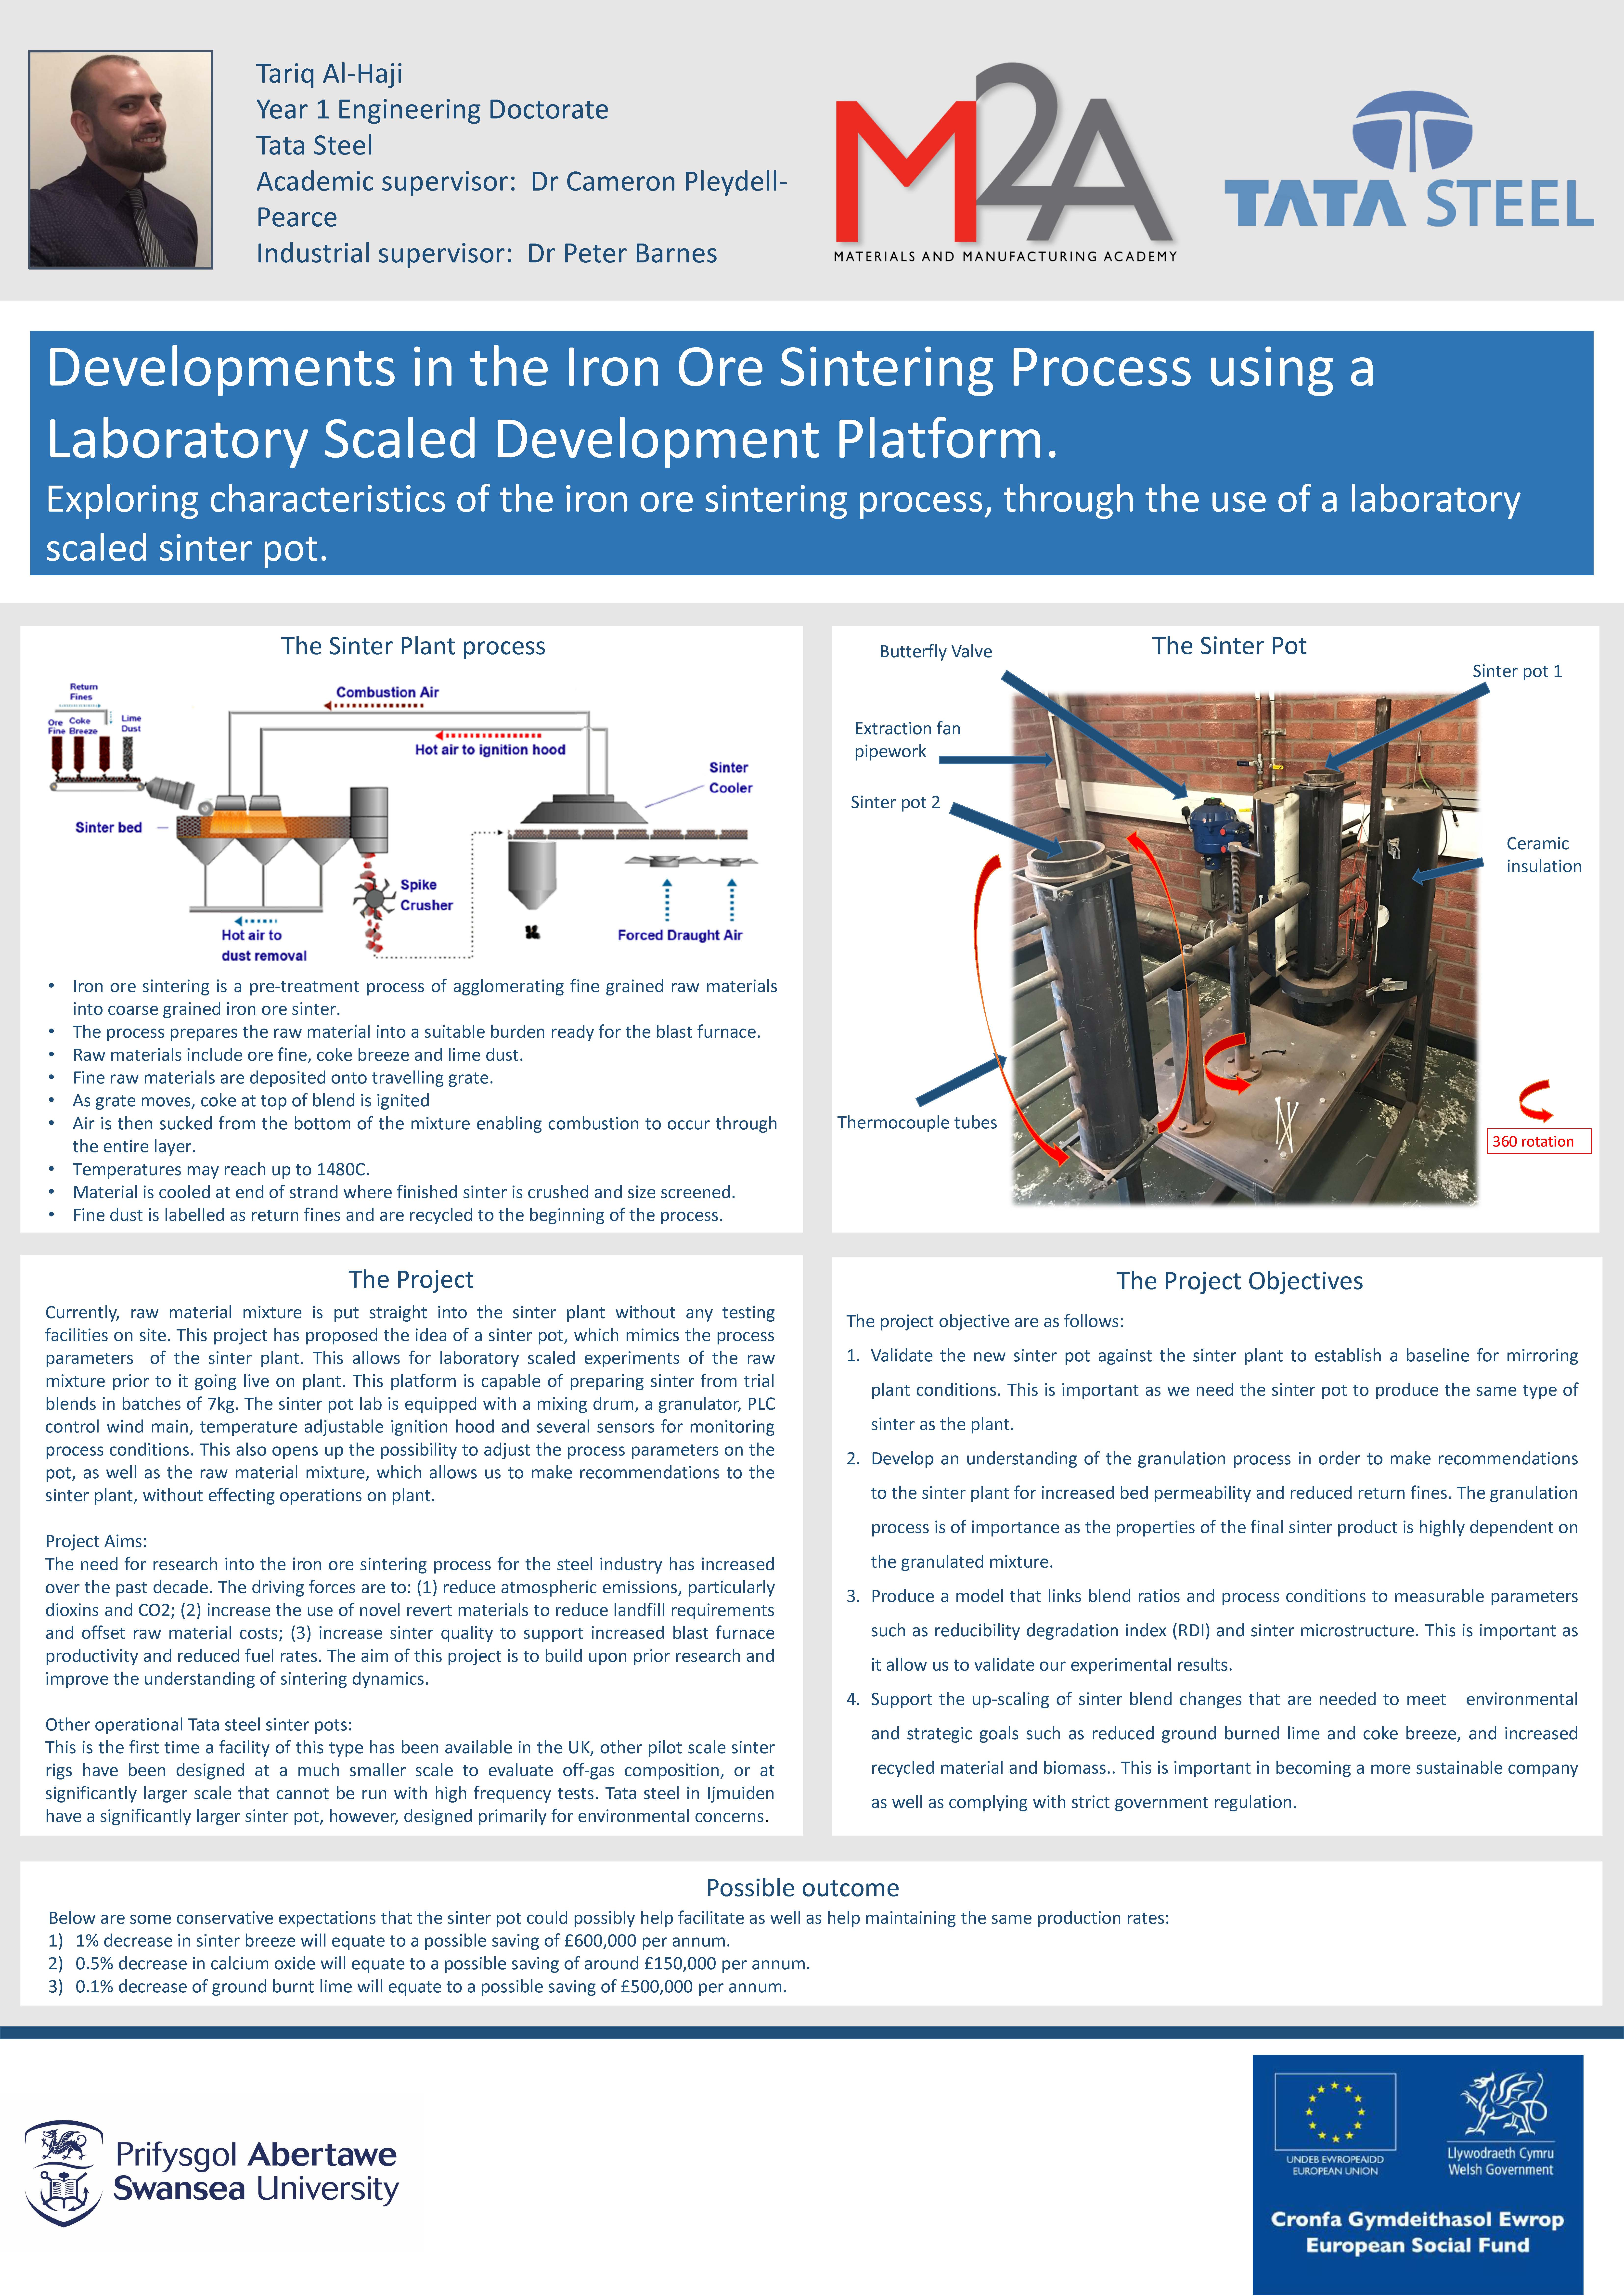 Developments in the Iron Ore Sintering Process using a Laboratory Scaled Development Platform